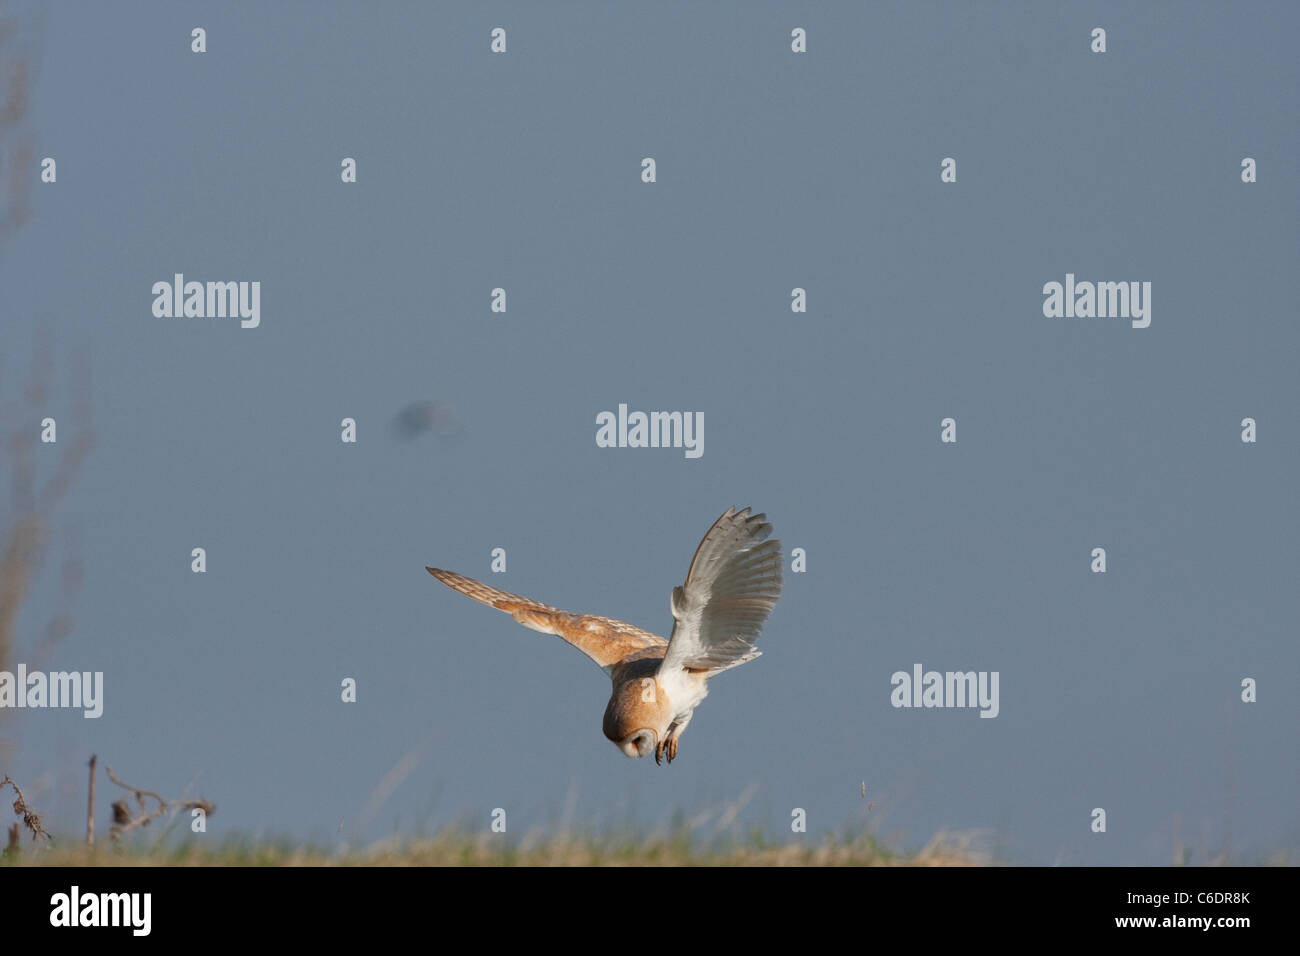 Barn Owl hunting prey with head focused and talons poised. - Stock Image